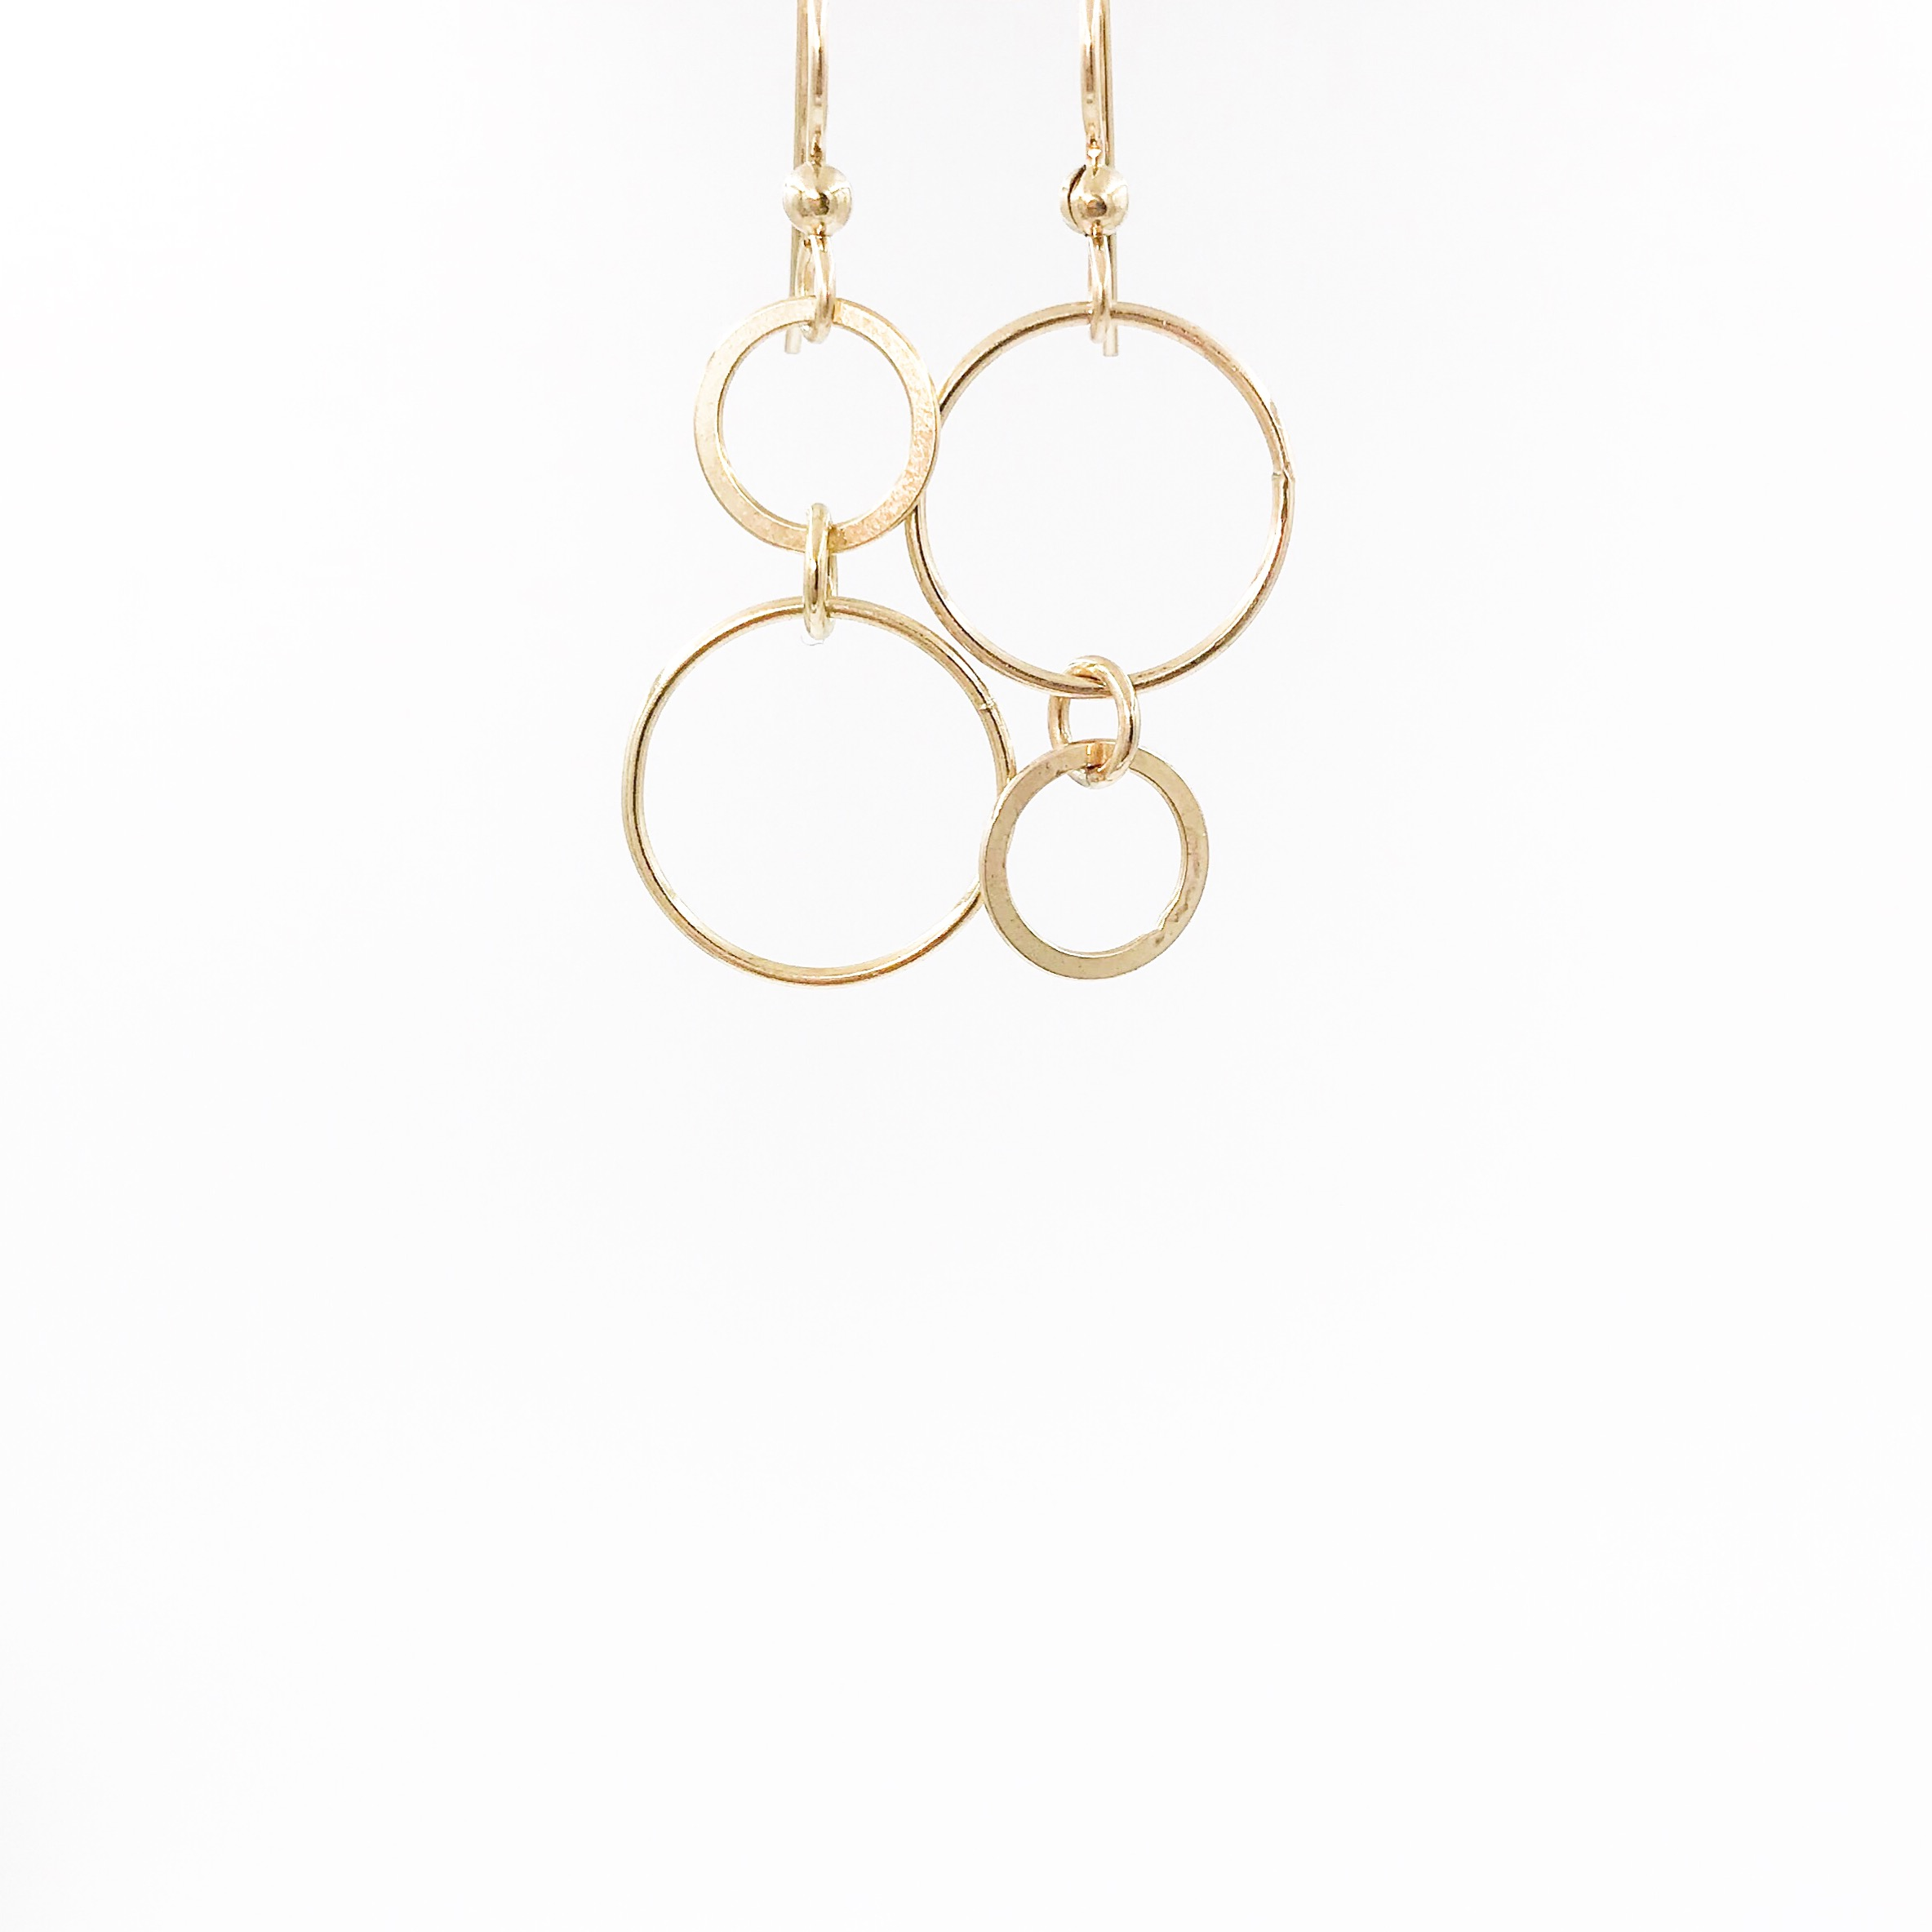 vuitton louis lockit mismatched earrings images